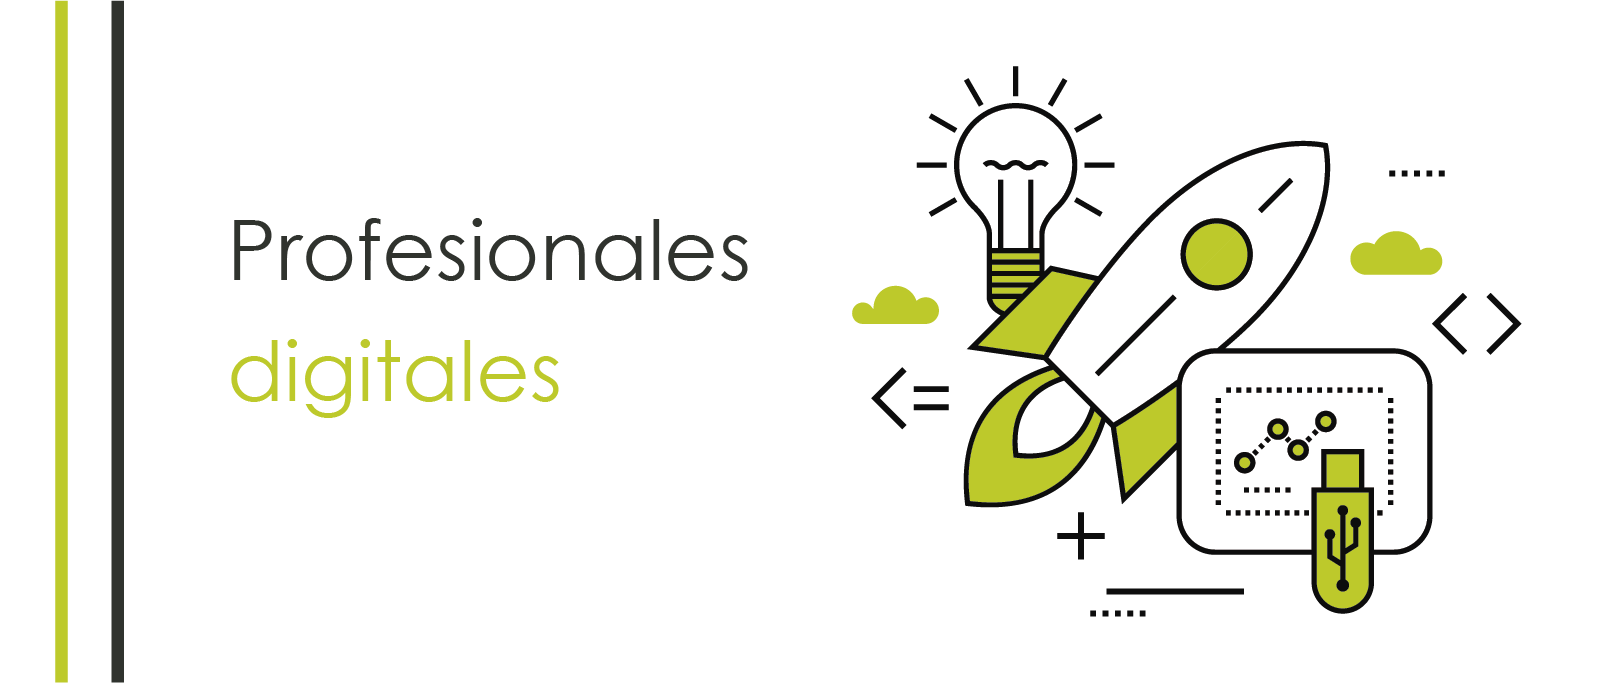 Profesionales digitales, profesionales competentes